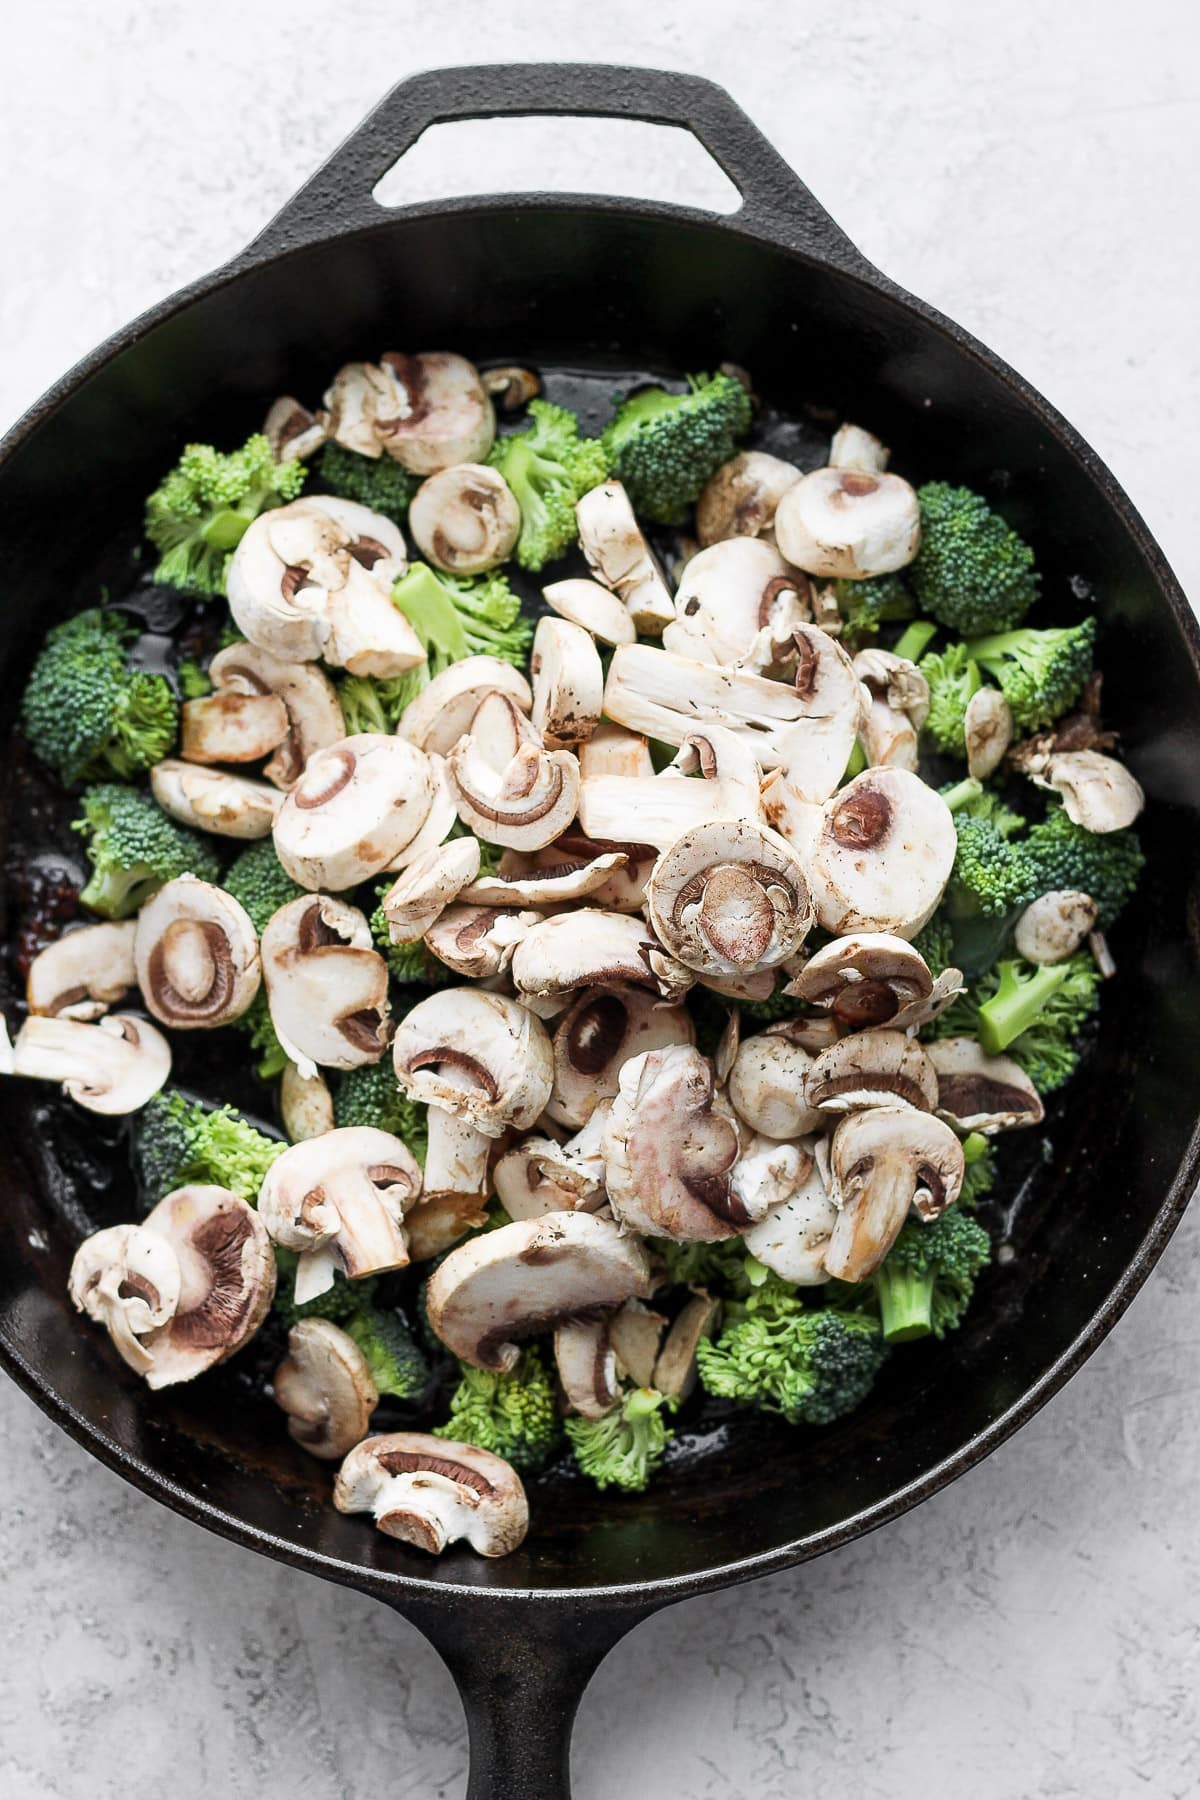 Cast iron skillet with broccoli and mushrooms.